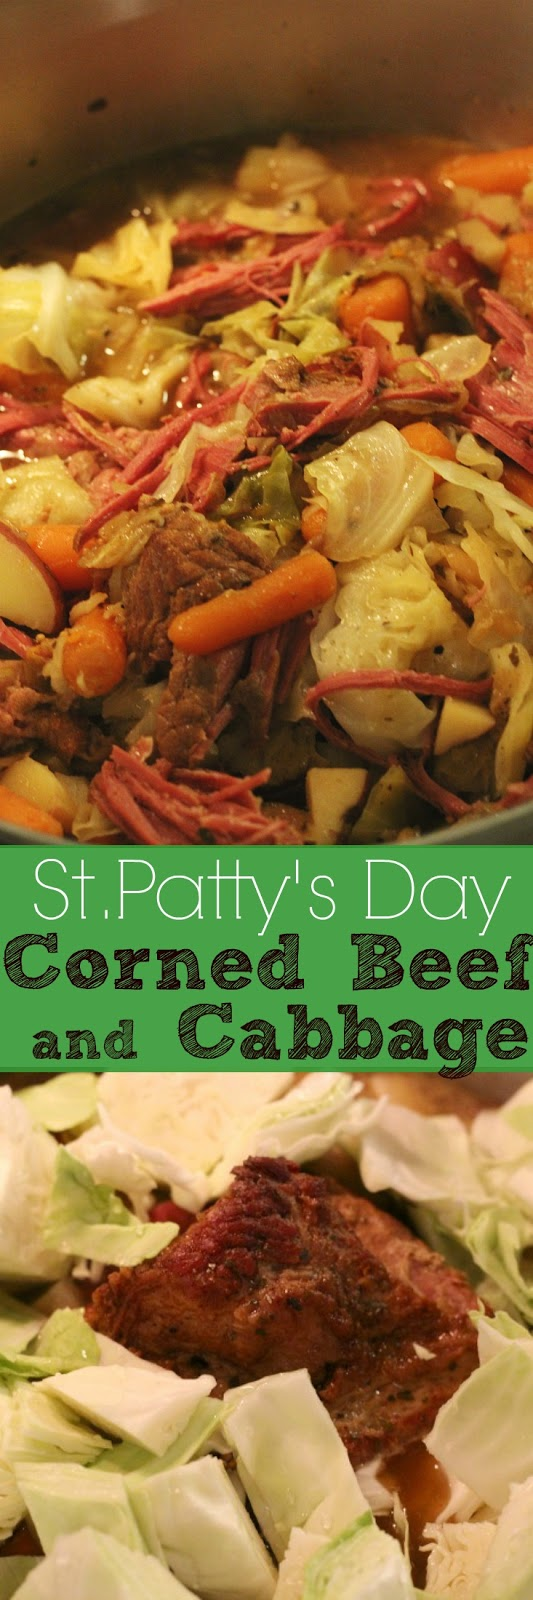 Roasting your corned beef before boiling it adds so much flavor!